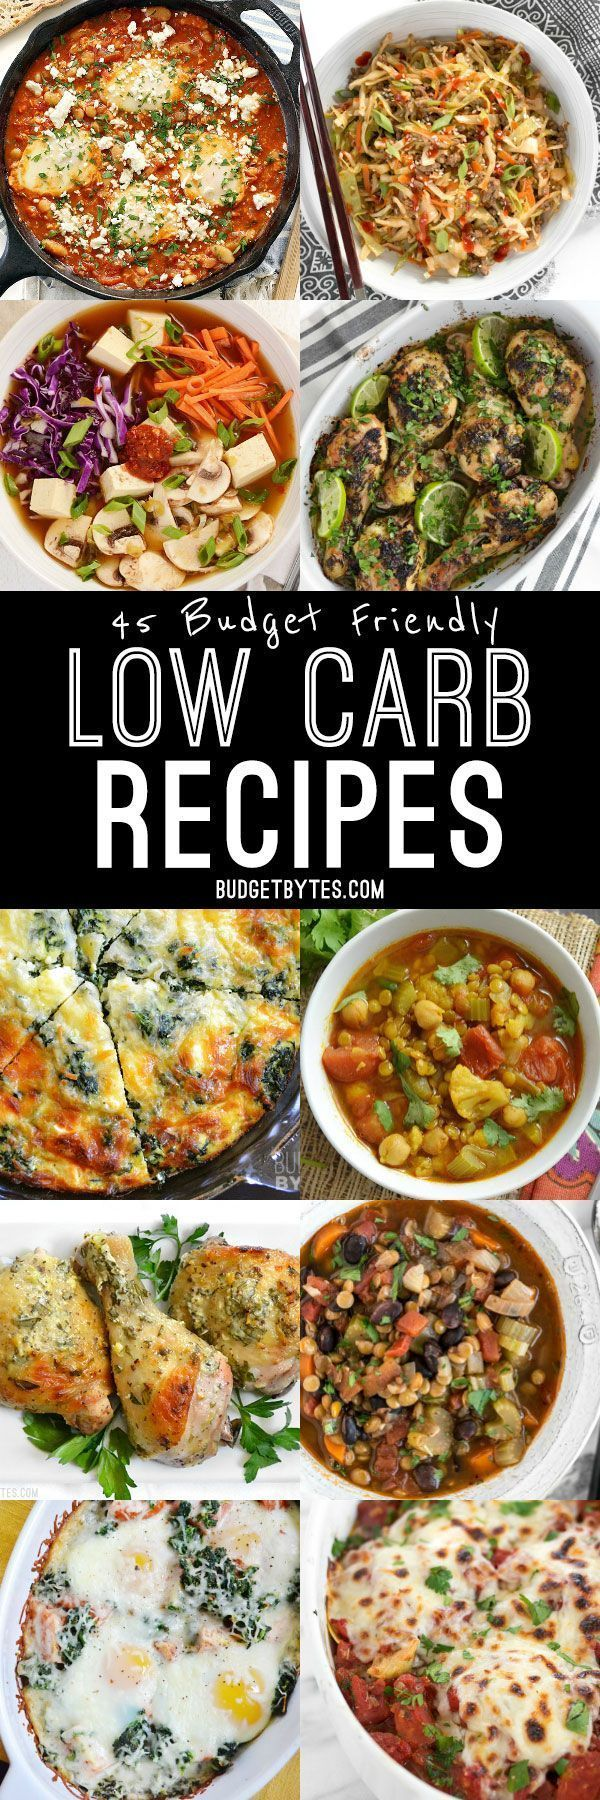 There's no pasta, rice, or potatoes in these 45 Budget Friendly Low Carb Recipes that will leave you happy, healthy, and full. @Budget Bytes | Delicious Recipes for Small Budgets